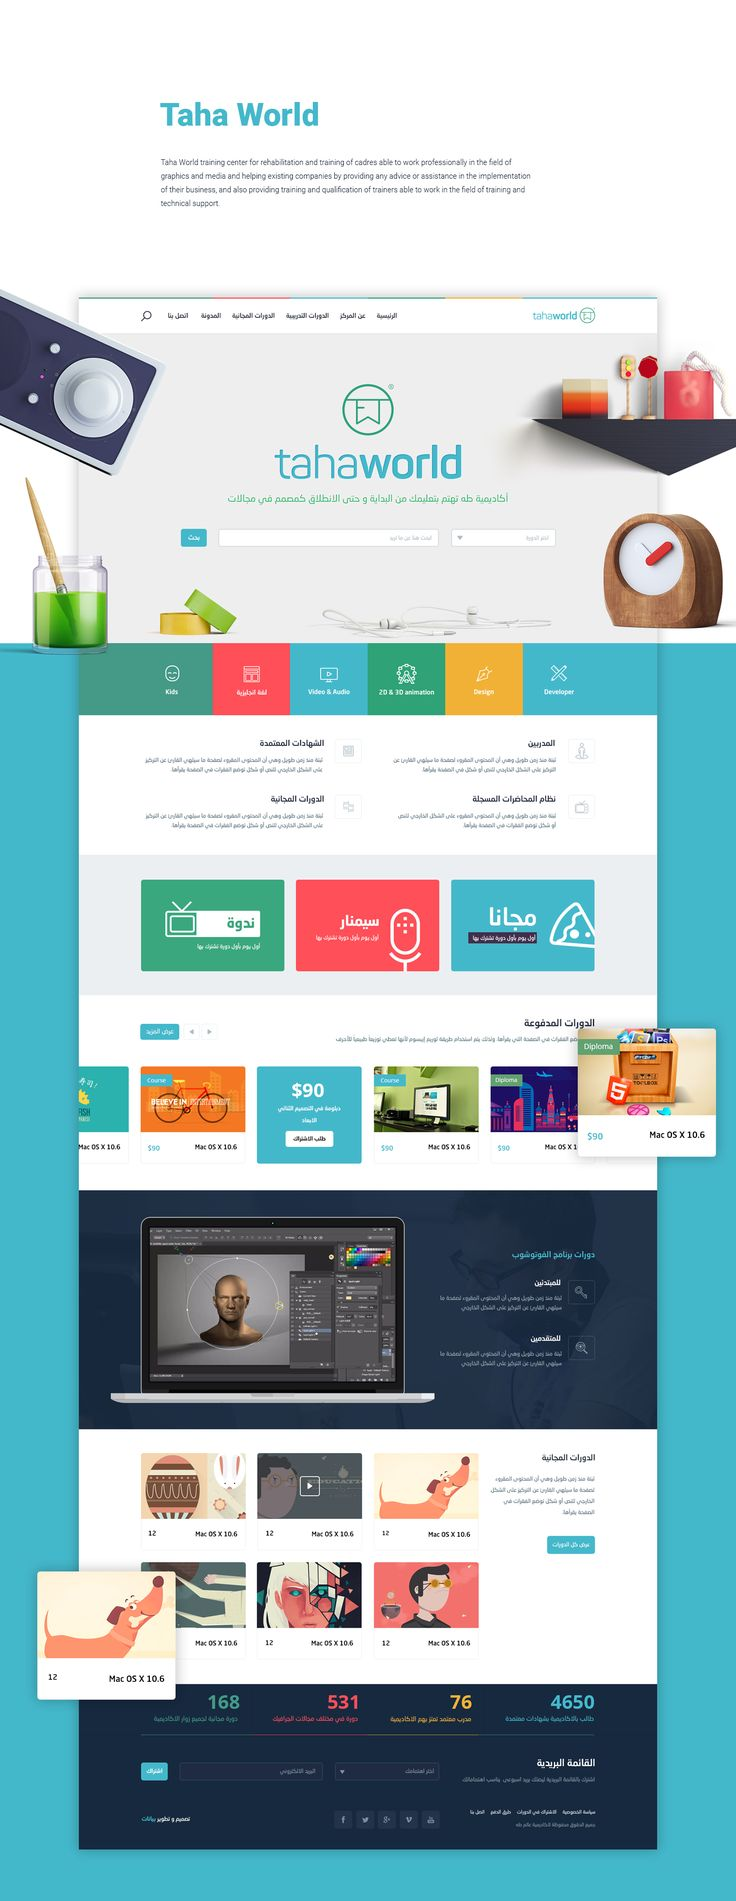 Tahaworld Website Design UX/UI on Behance